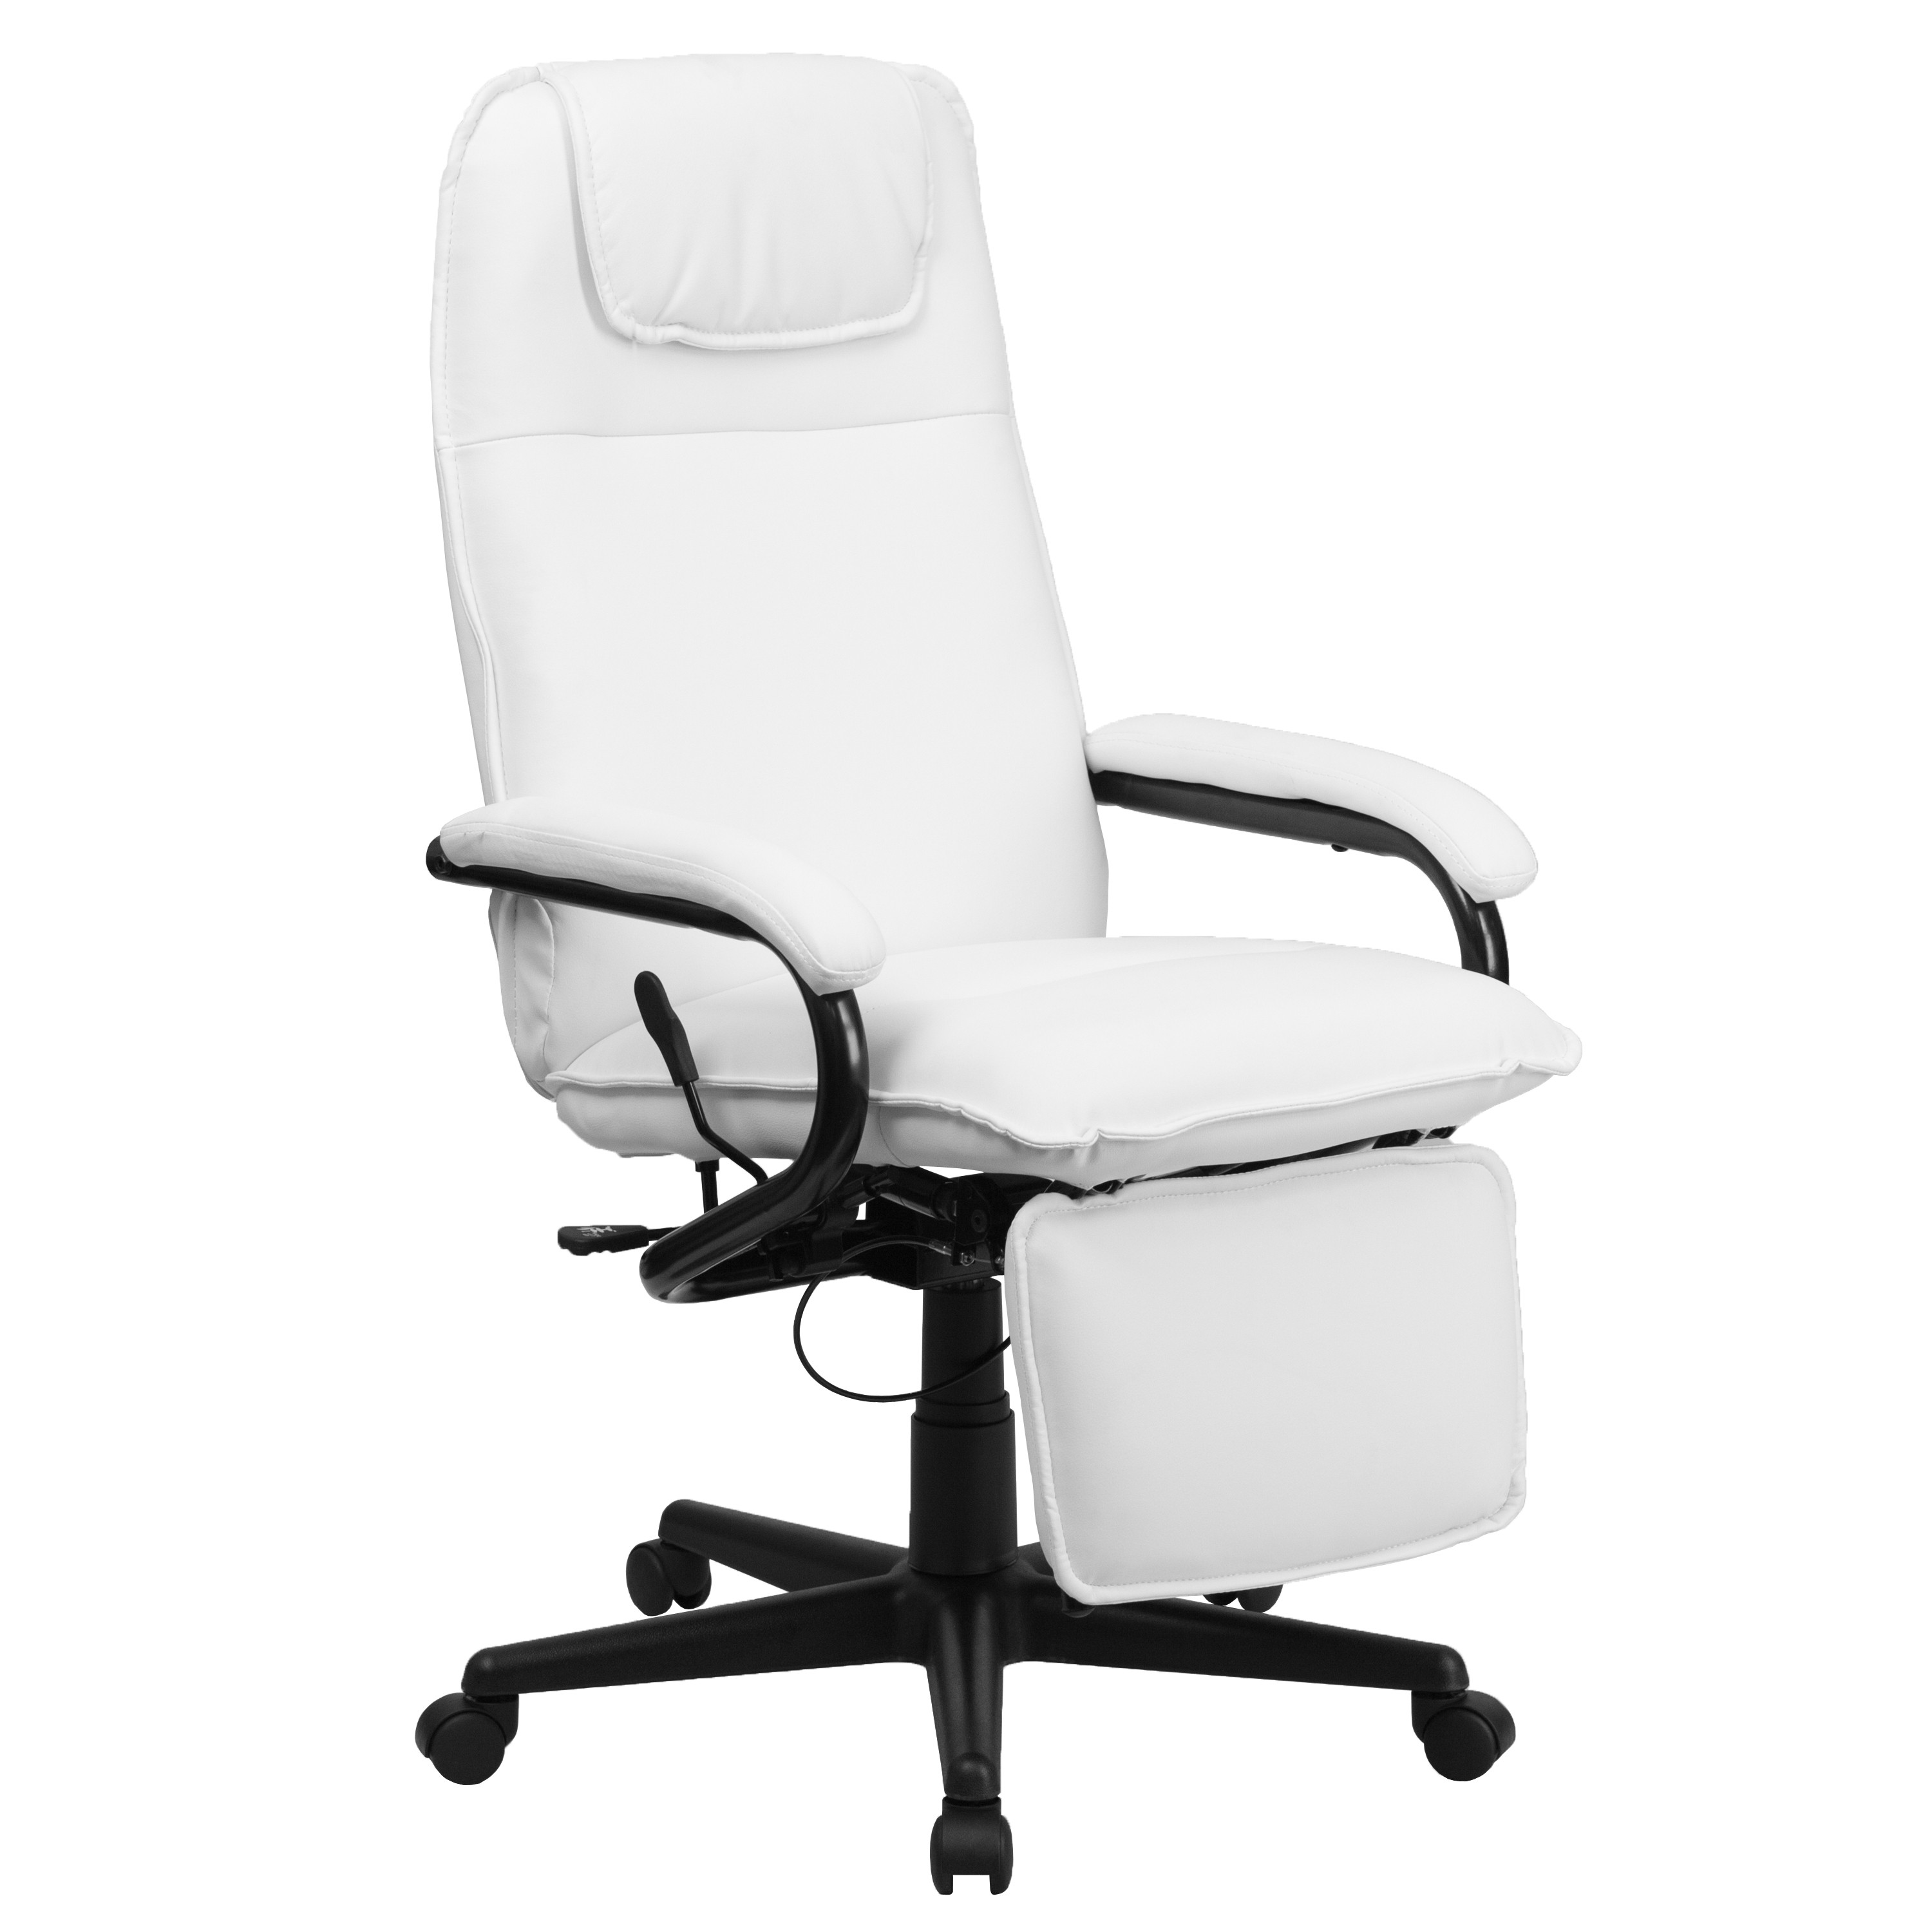 MFO High Back White Leather Executive Reclining fice Chair